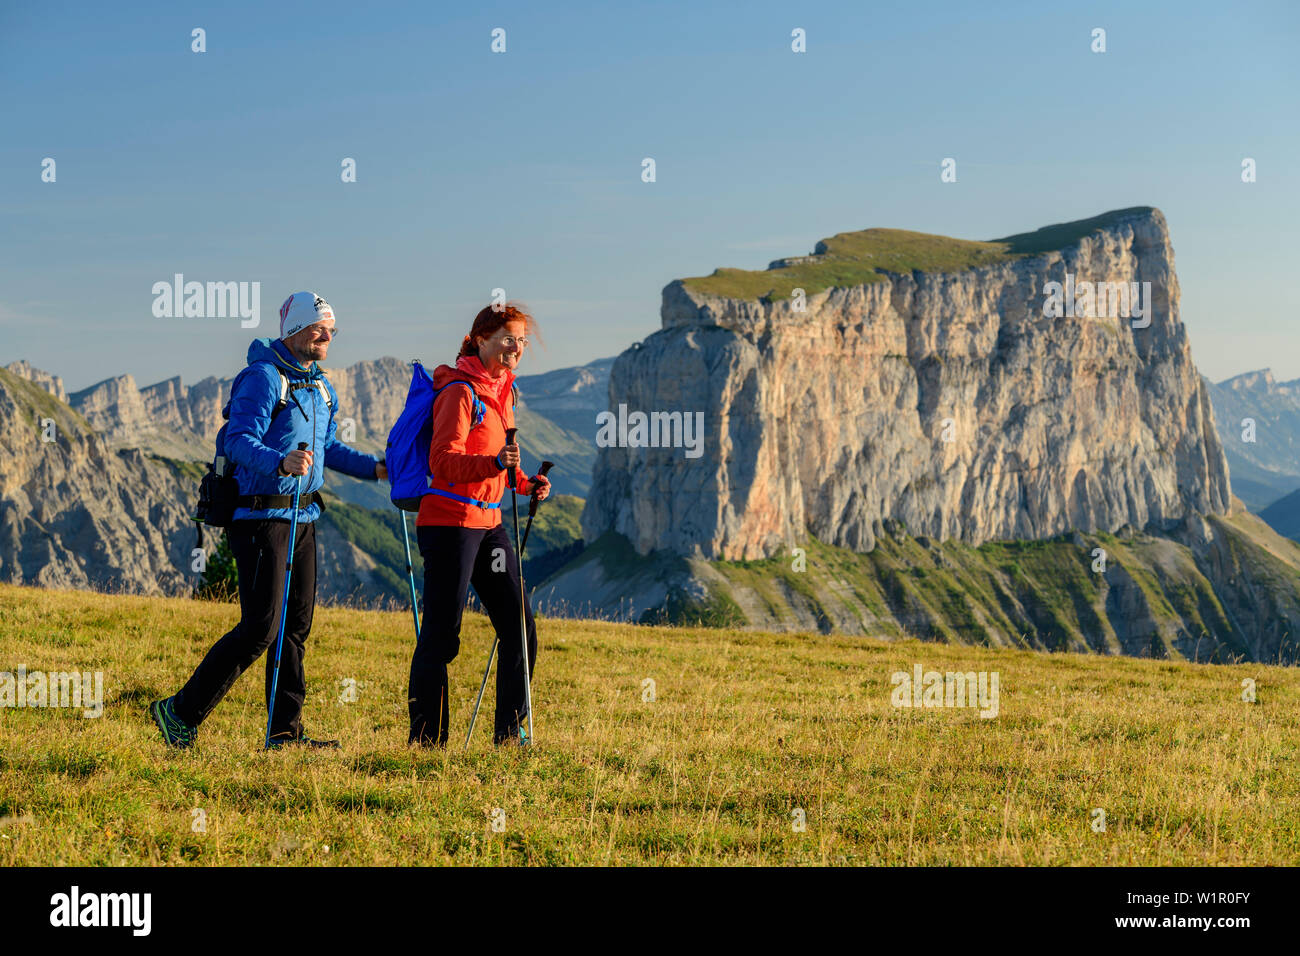 A man and a woman walking on meadow with Mont Aiguille in the background, from the Tête Chevalier, Vercors, Dauphine, Dauphine, Isère, France - Stock Image